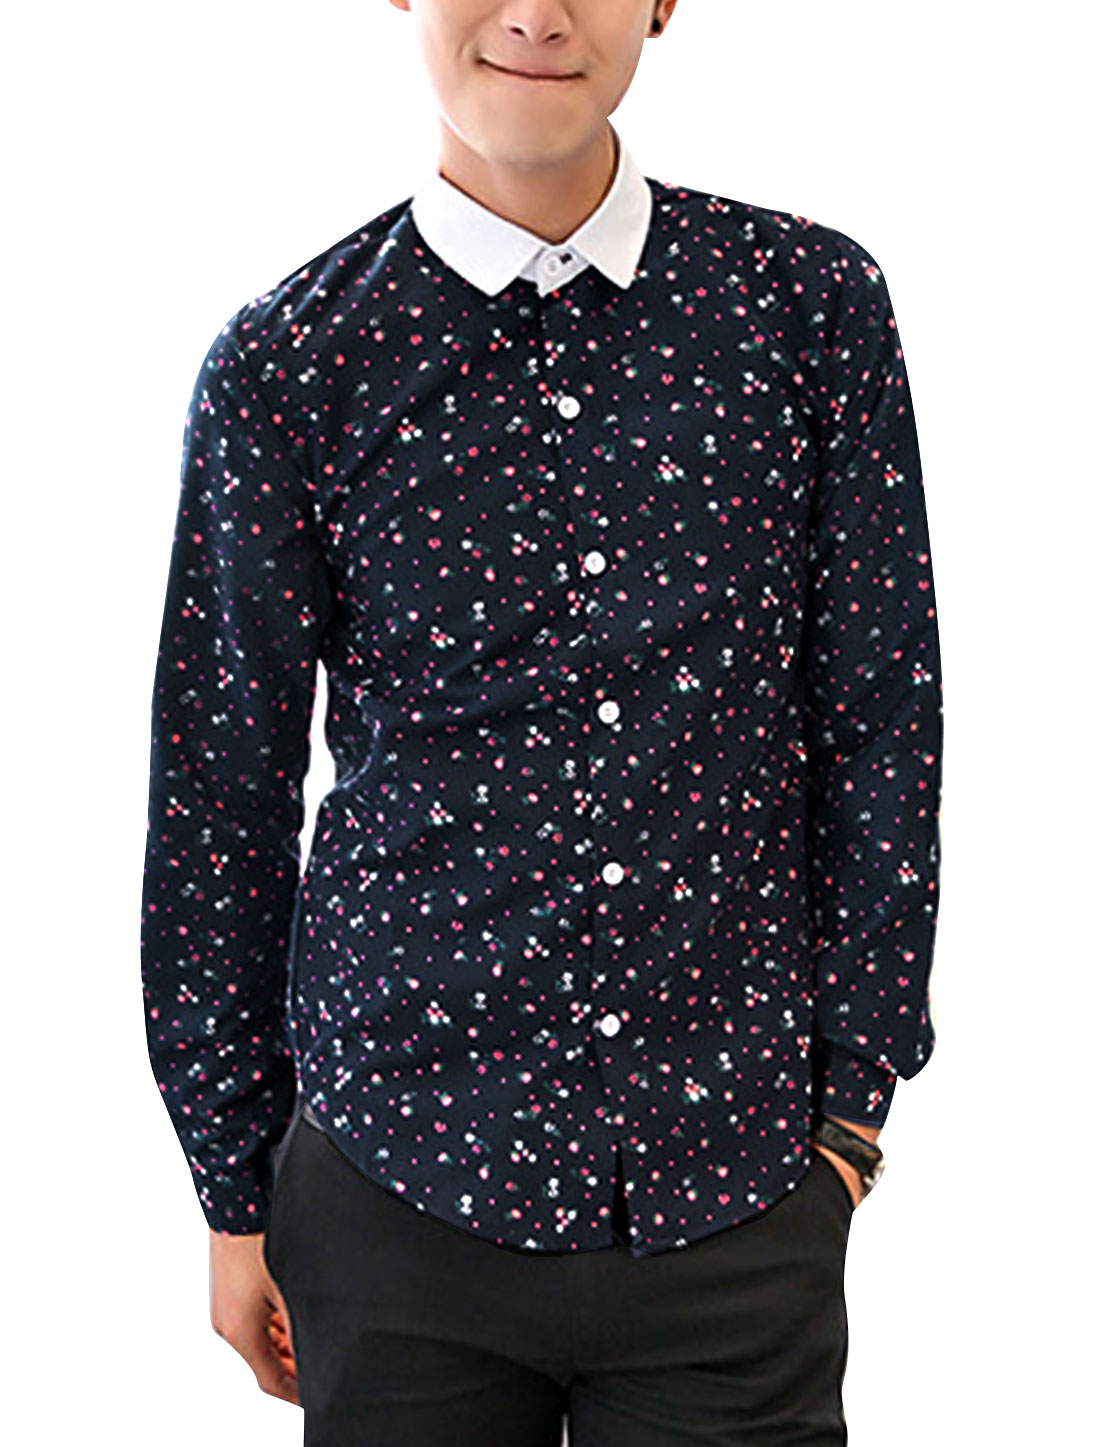 Men Long Sleeves Single Breasted All-over Floral Print Fashion Shirt Black M